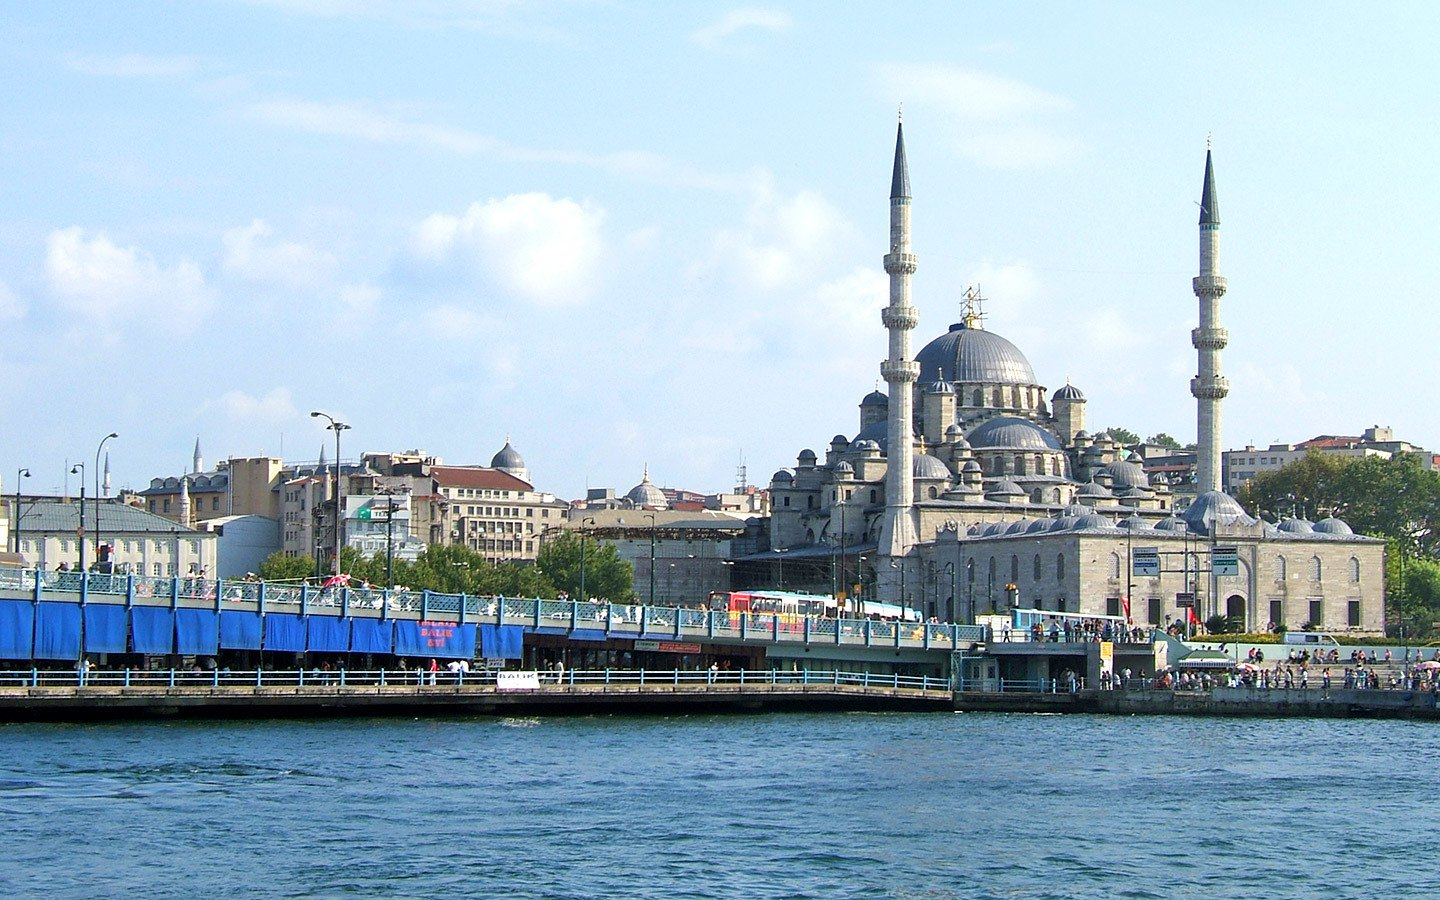 The Galata Bridge across the Golden Horn in Istanbul